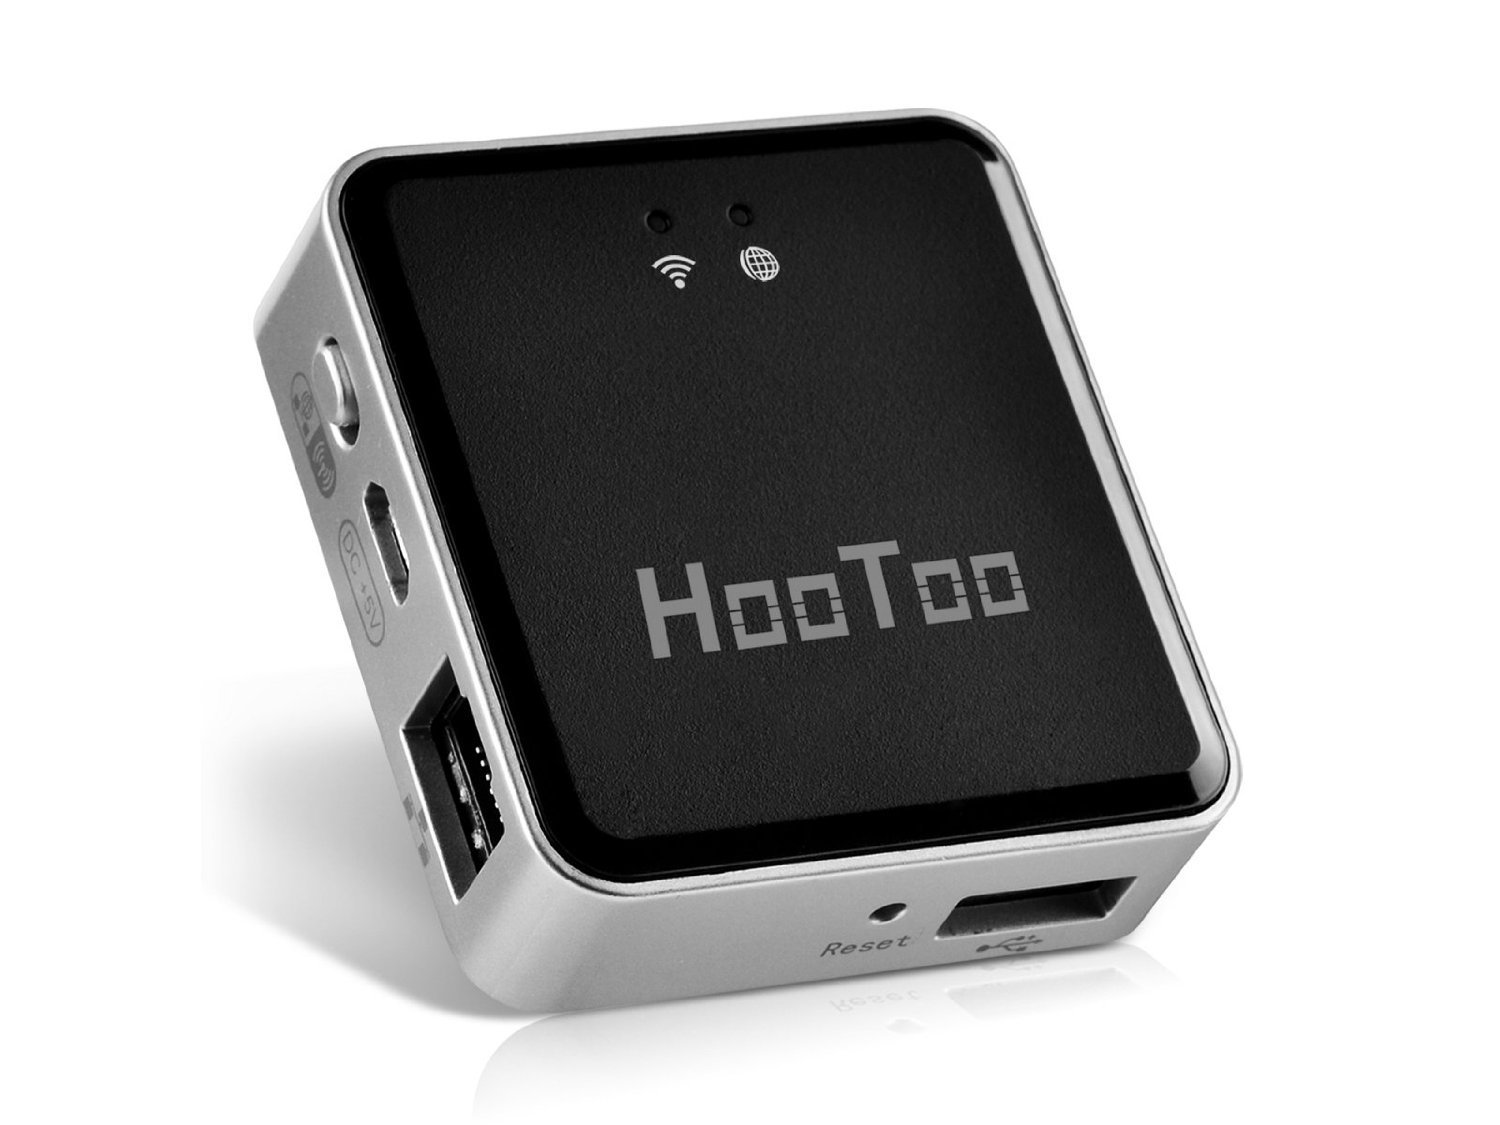 HooToo Wireless Travel Router, USB Port, N150 Wi-Fi Router, USB Powered, High Performance, Mini Router- TripMate Nano (Not a Hotspot) by HooToo (Image #2)